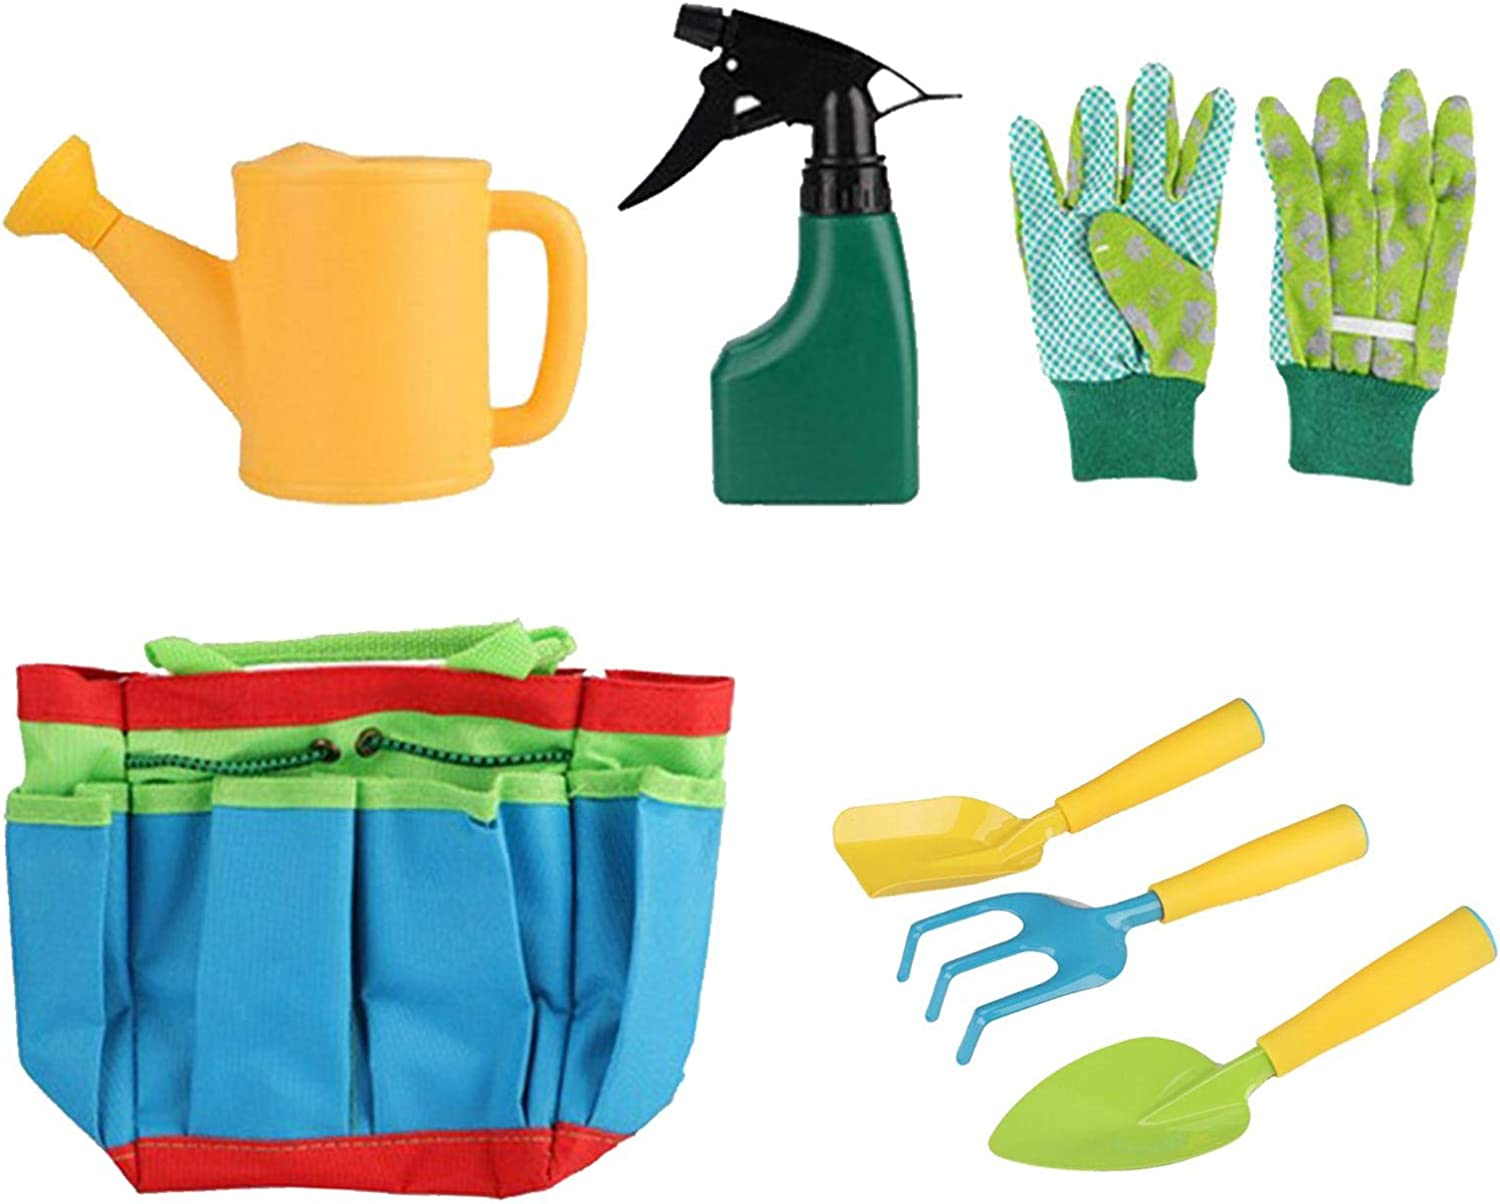 IMSHIE Regular store Kids Gardening Set rake, with Special price for a limited time Tools G